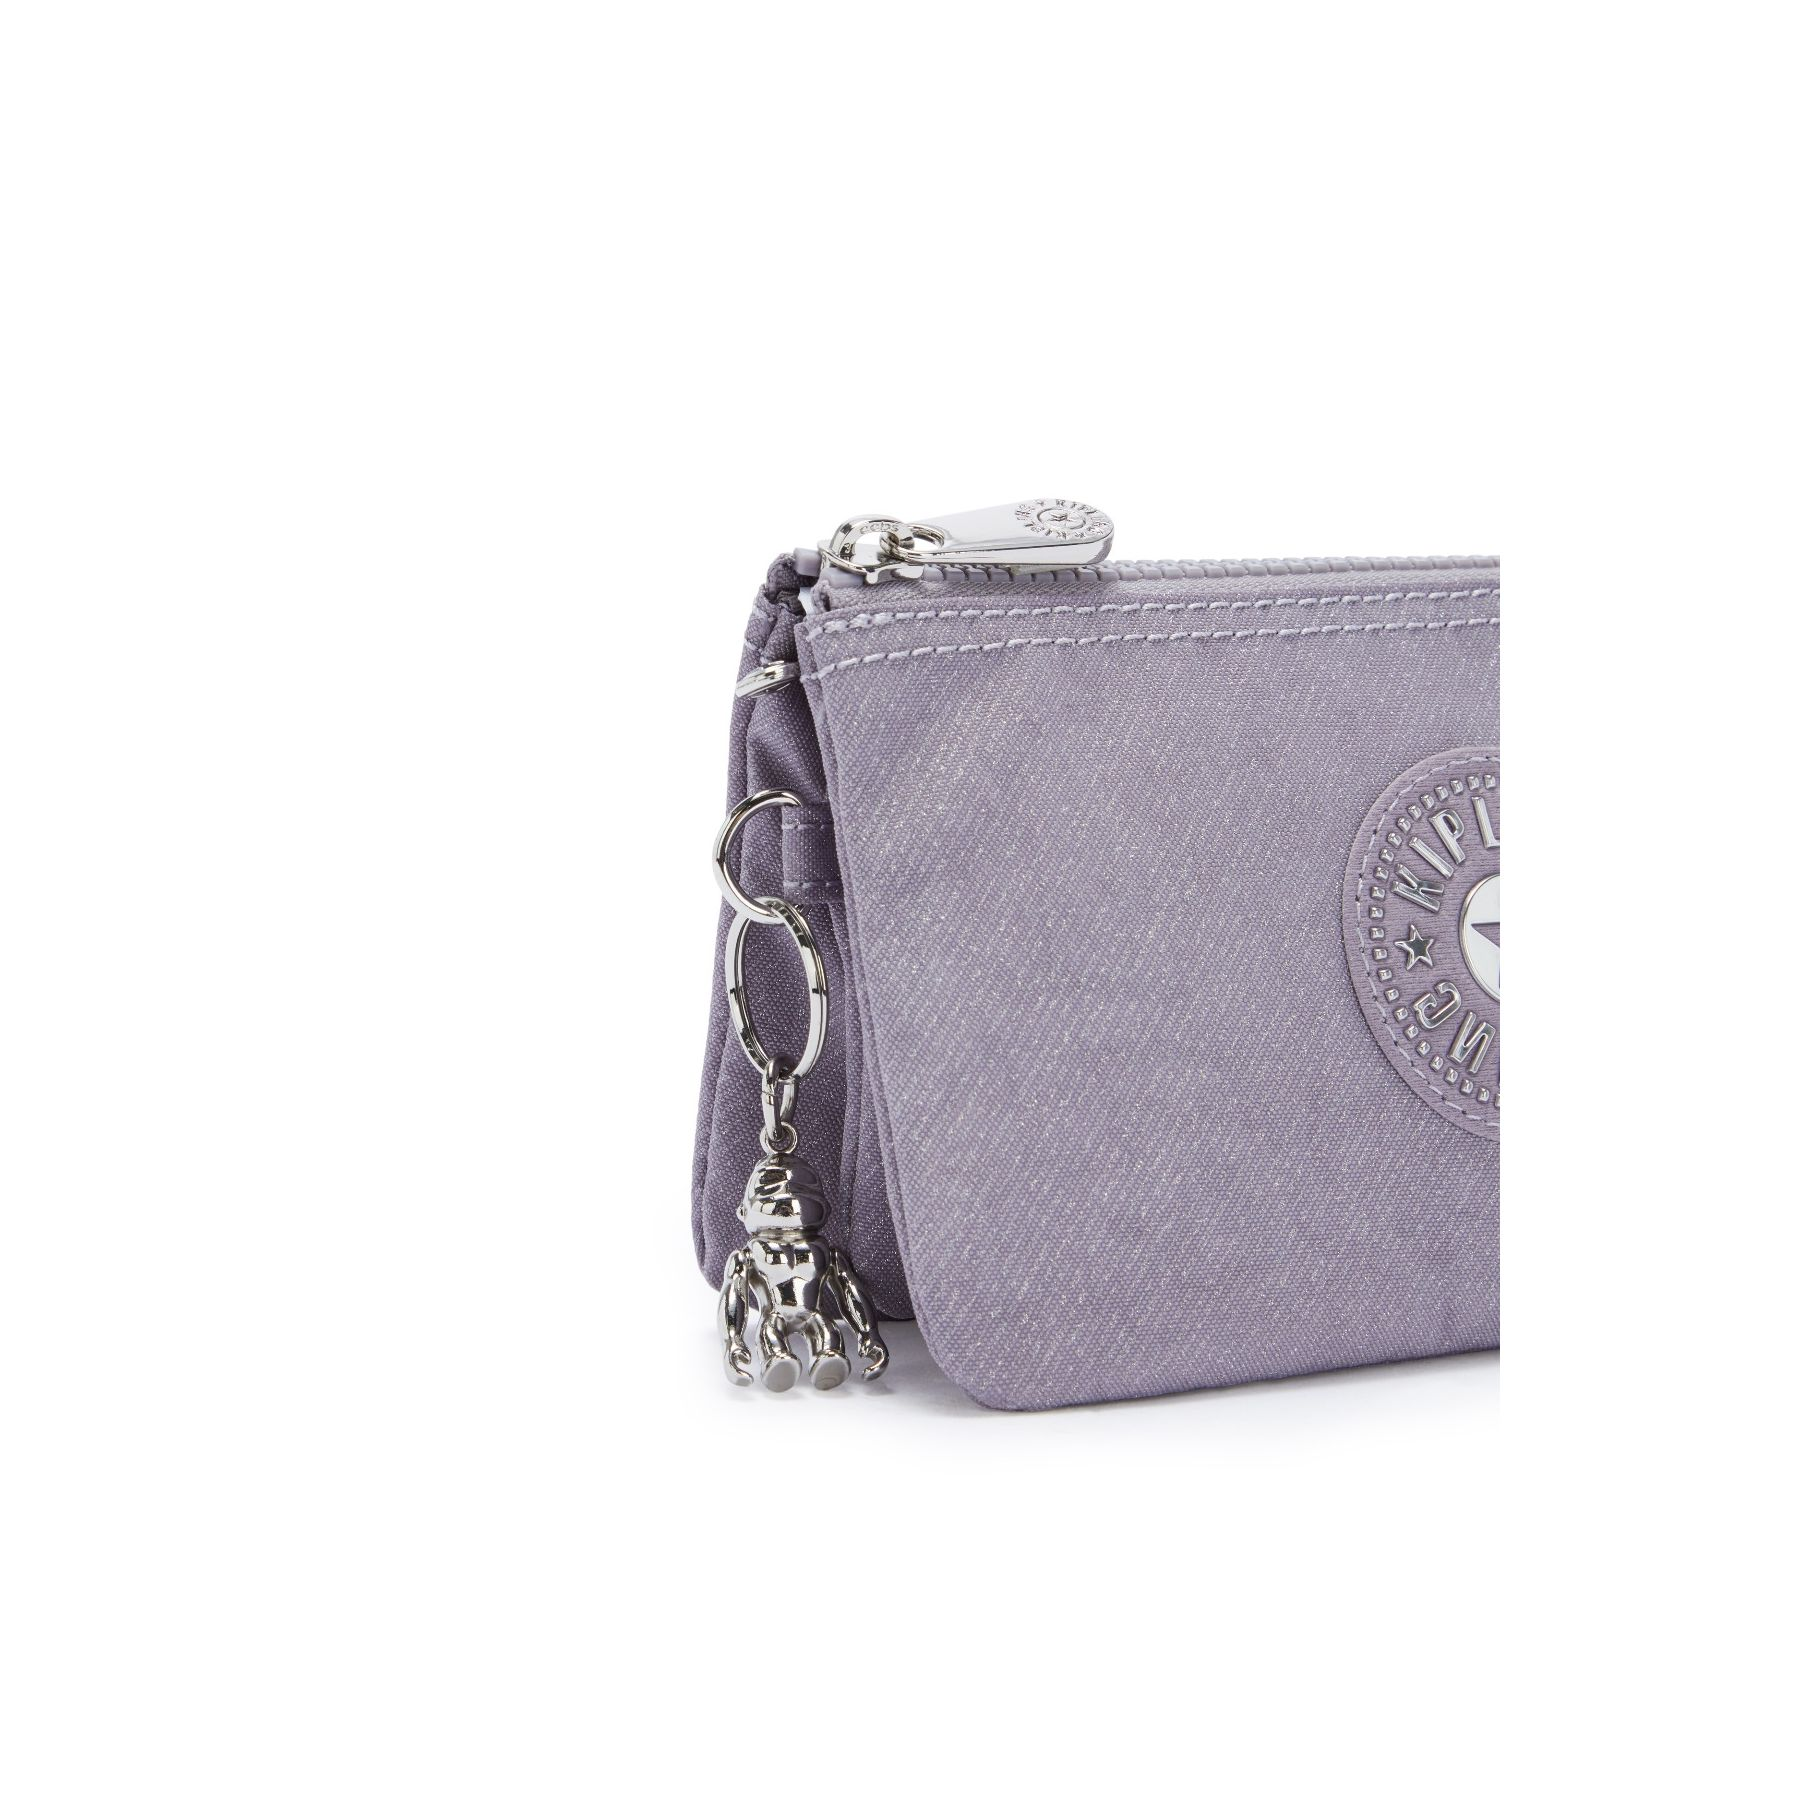 CREATIVITY L OUTLET by Kipling